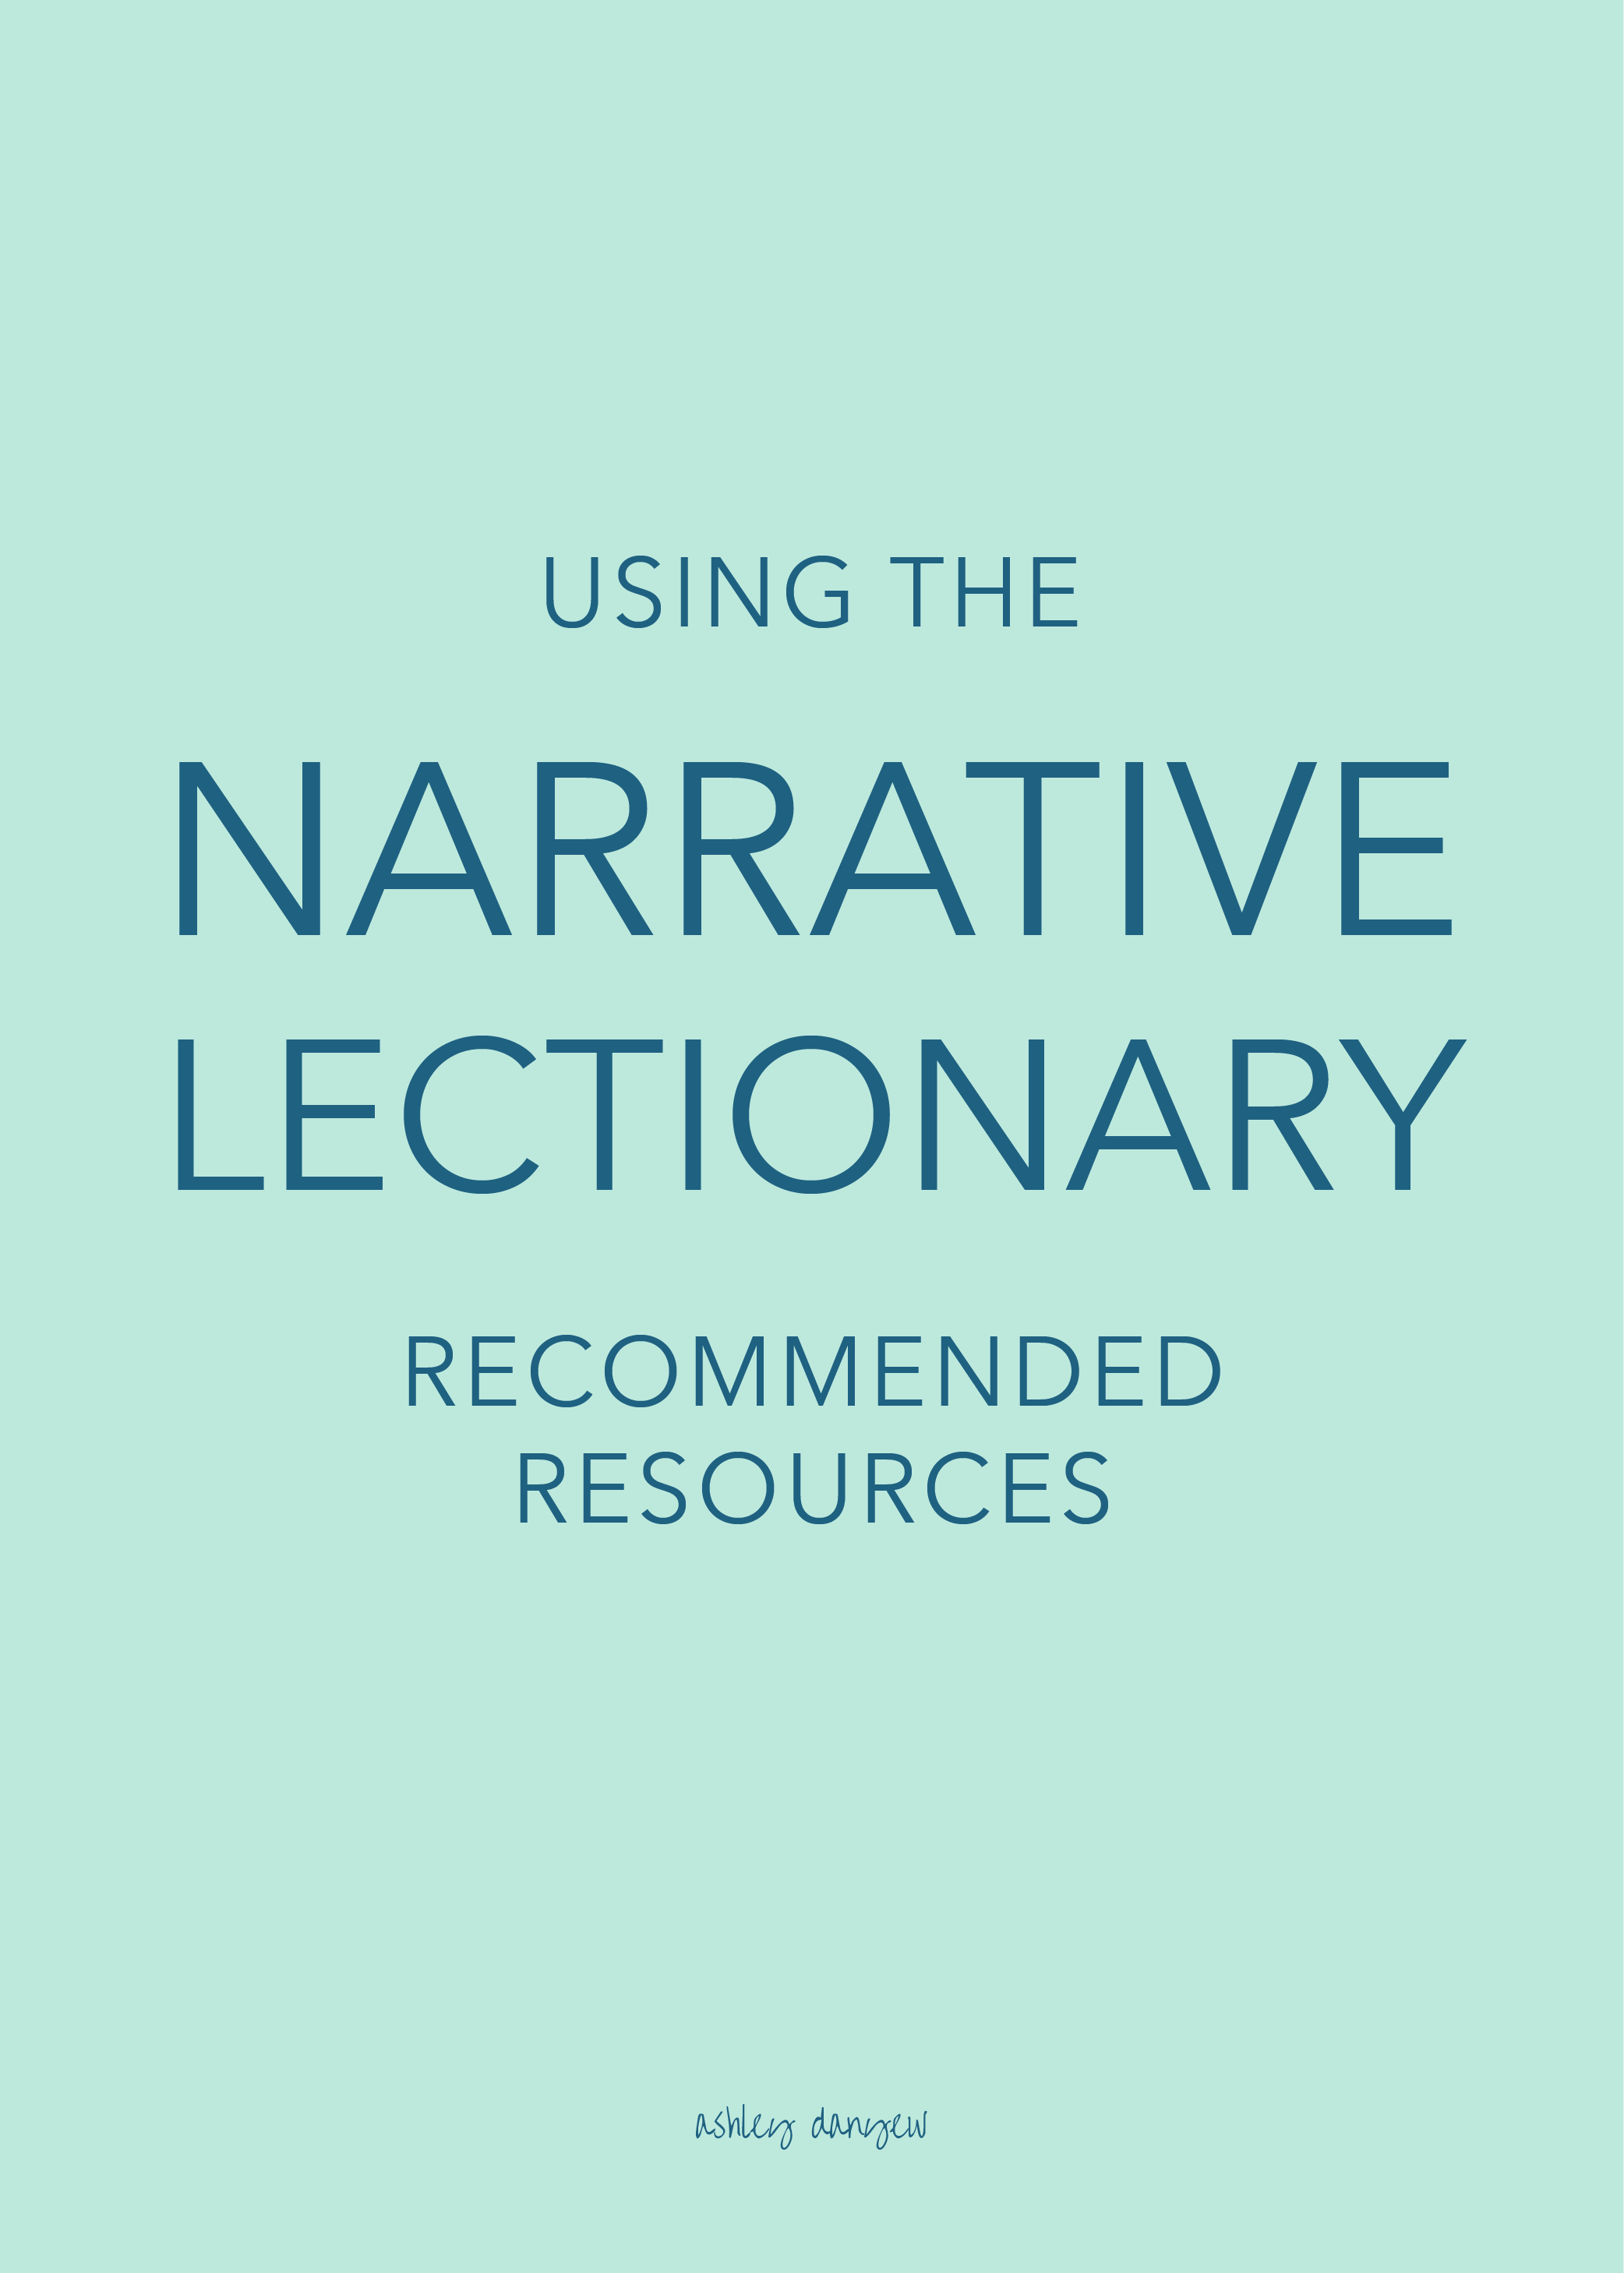 Copy of Using the Narrative Lectionary: Recommended Resources